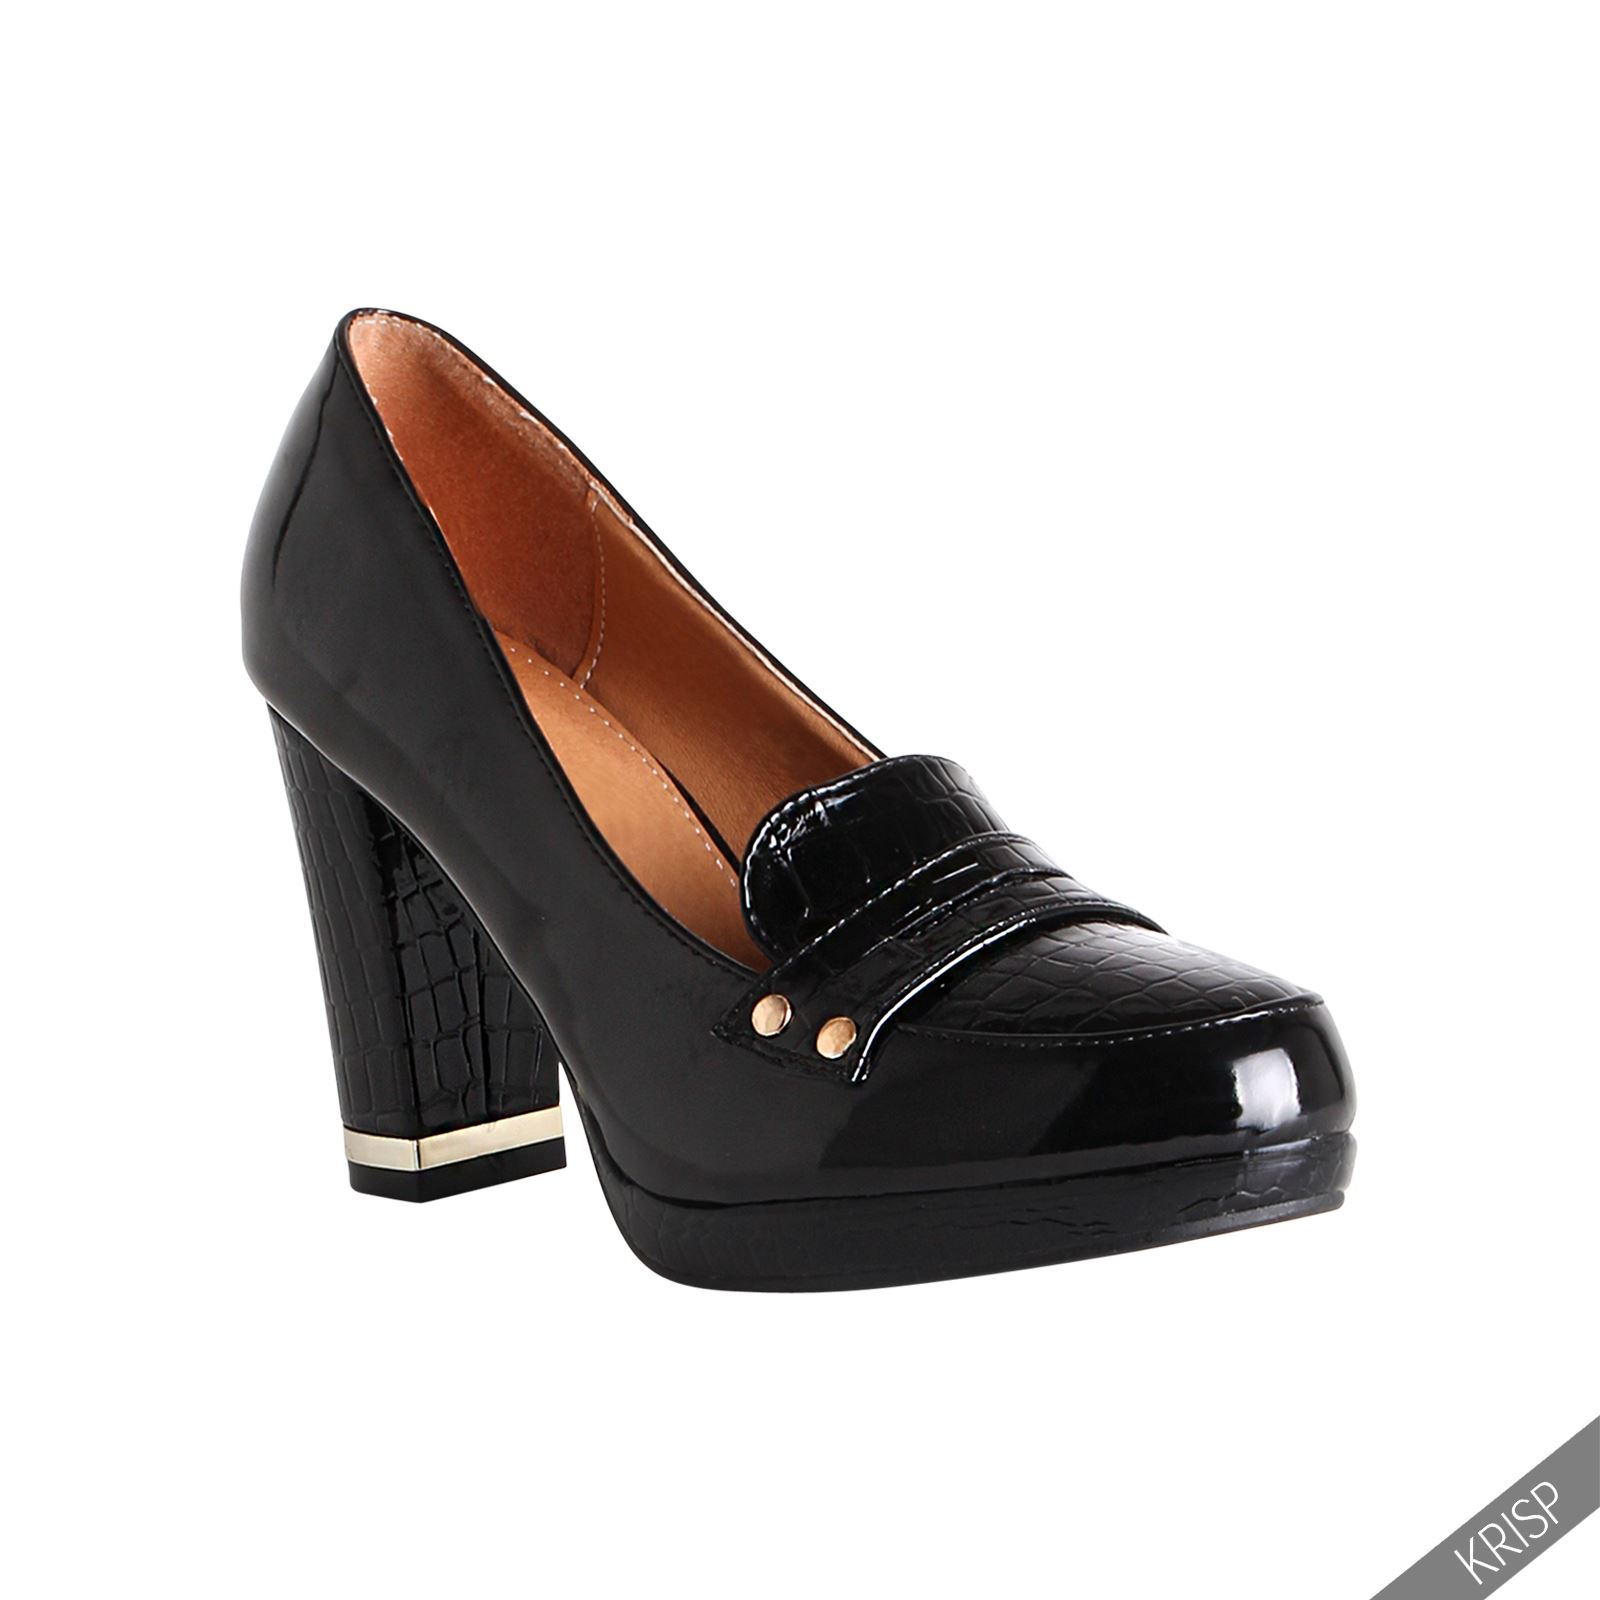 Enjoy free shipping and easy returns every day at Kohl's. Find great deals on Womens Loafers at Kohl's today!